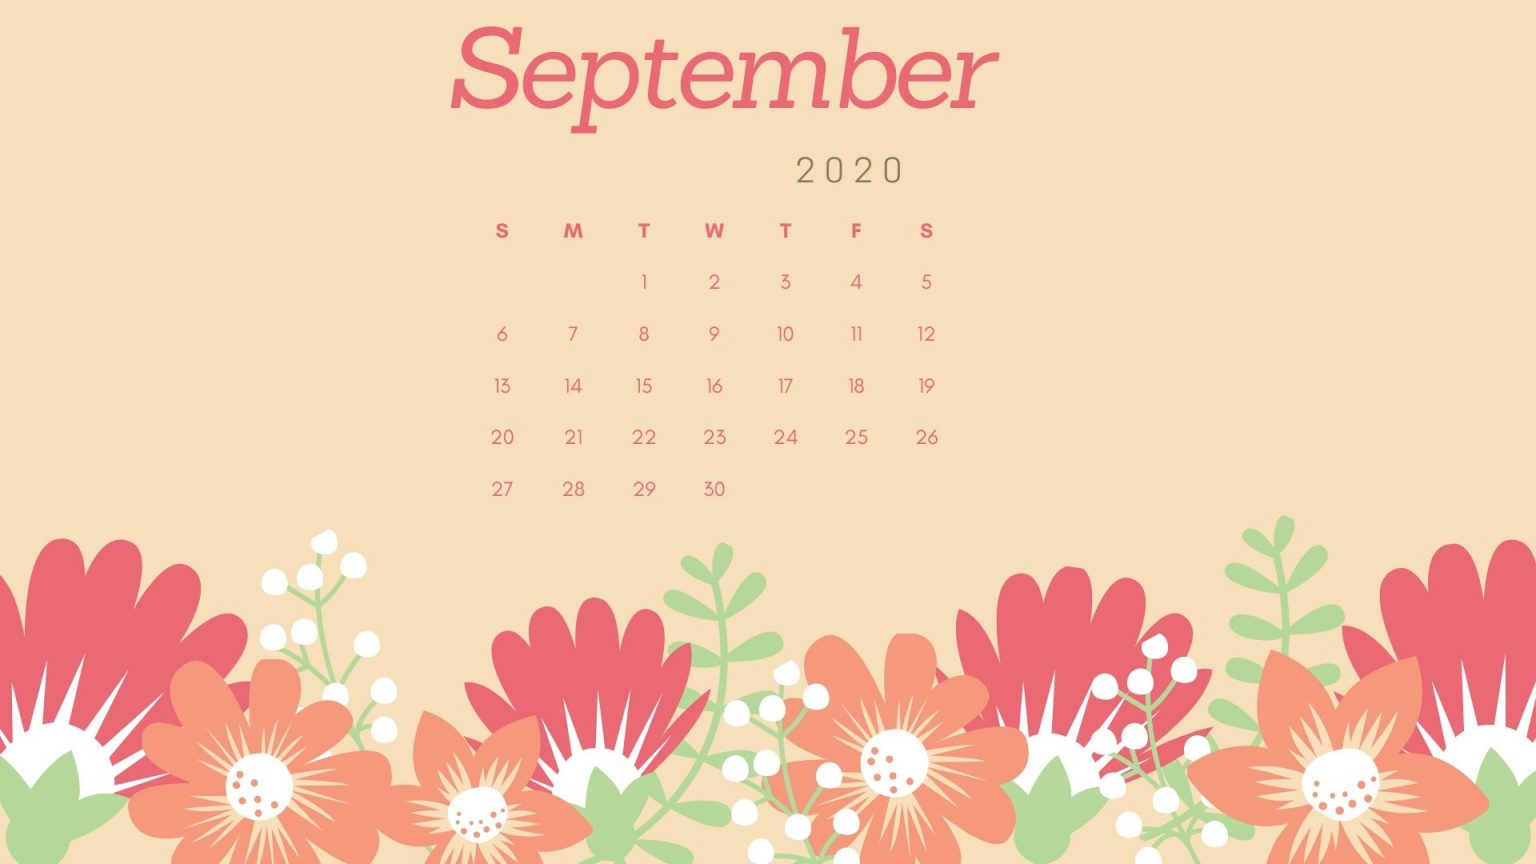 September 2020 Floral Calendar Wallpaper